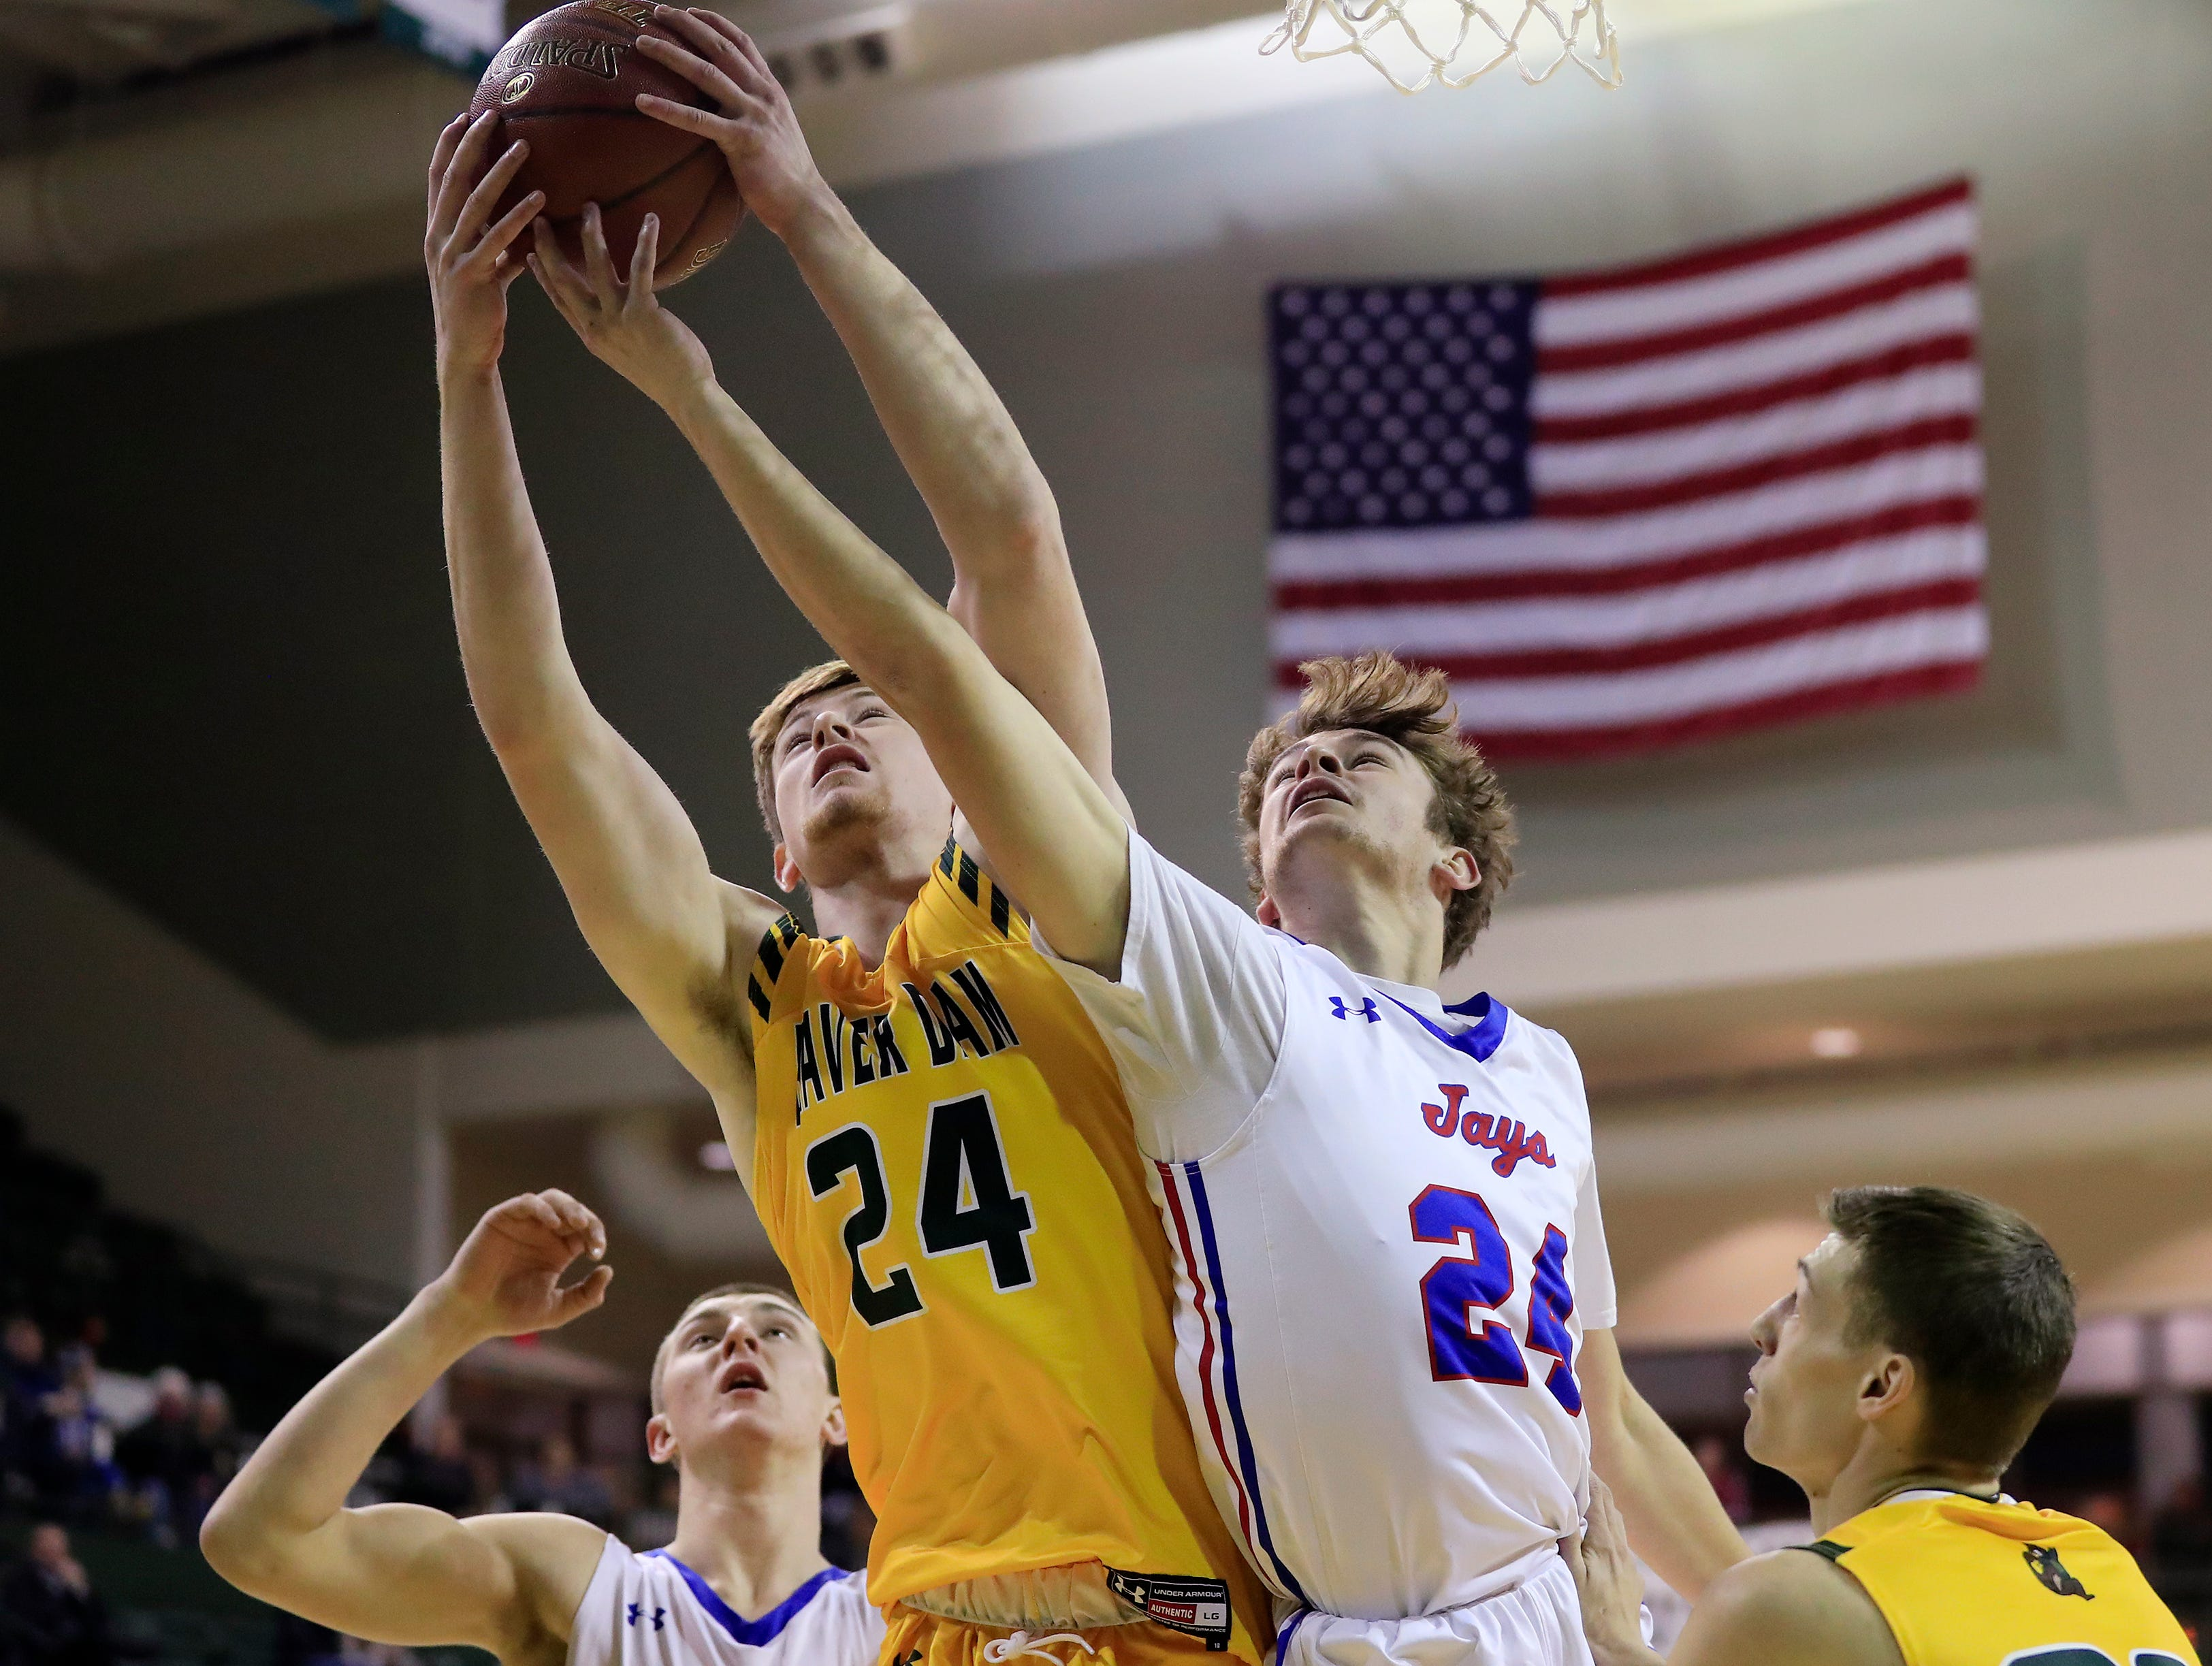 Merrill's Chase Bonnell (24) jumps for a rebound against Beaver Dam's Marshall McGauley (24) at the Shawano Shootout at the Kress Center on Friday, December 28, 2018 in Green Bay, Wis.